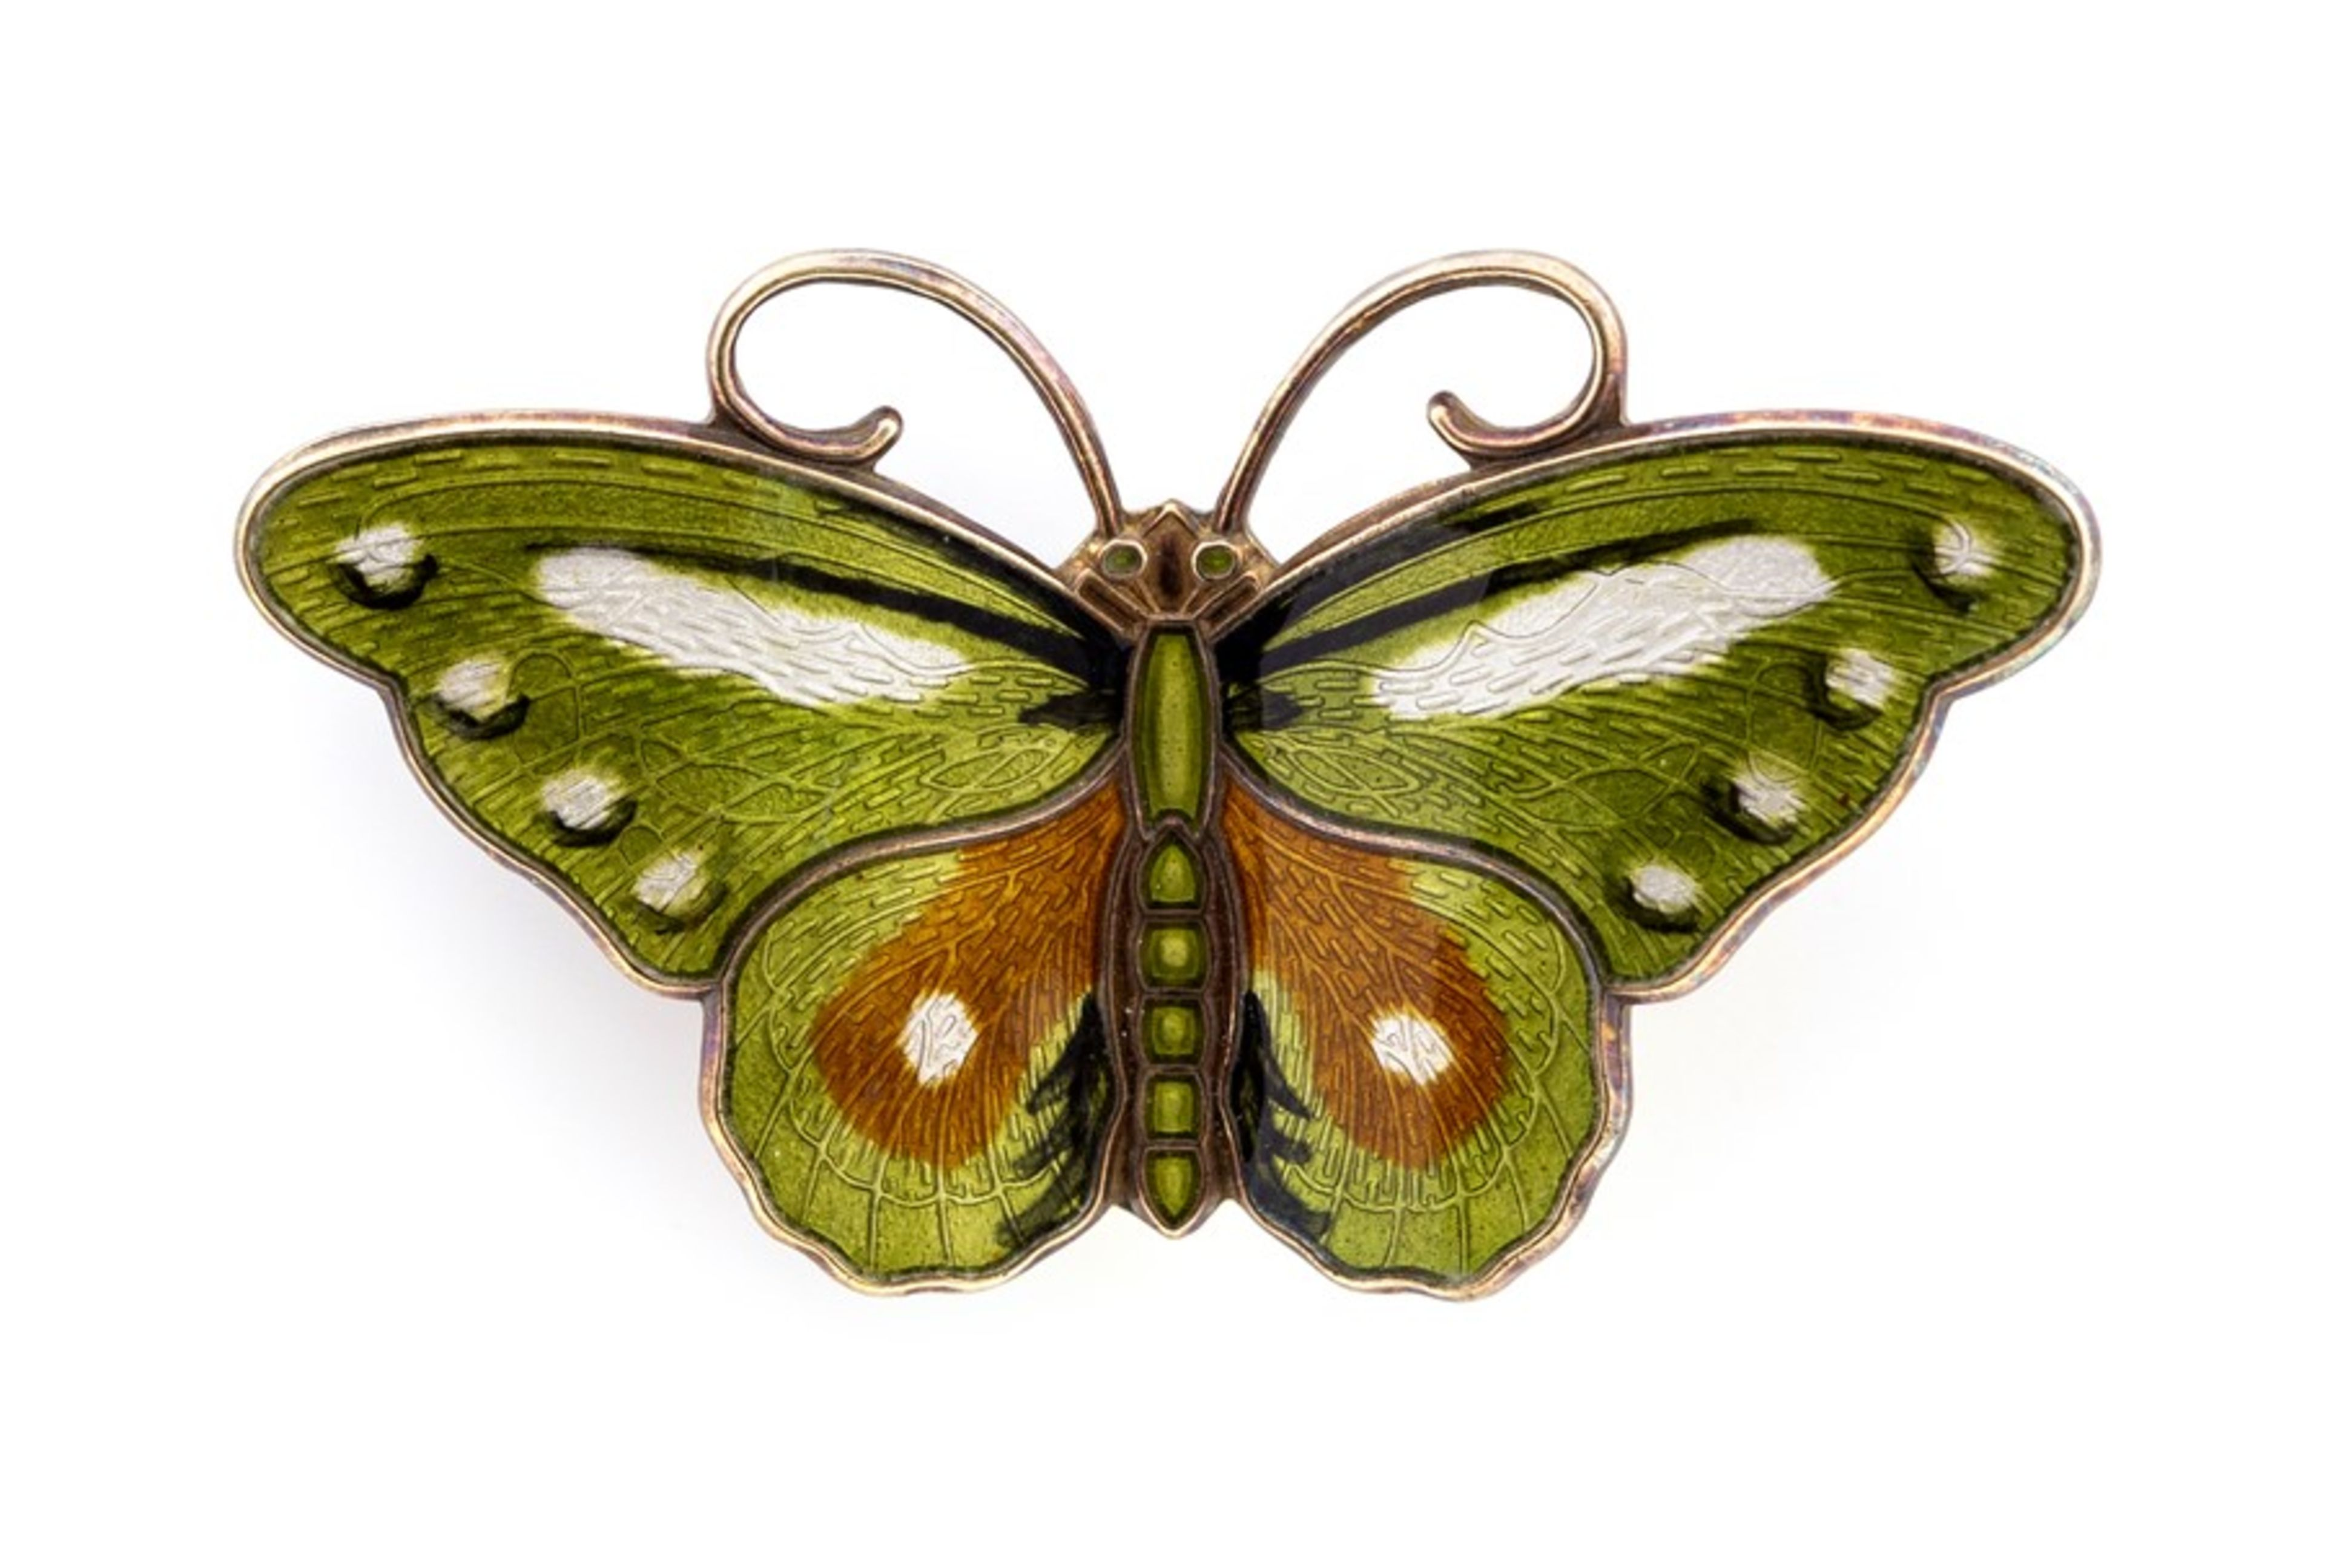 Lot 13 - Hroar Prydz - a Norwegian silver and enamel butterfly brooch, in green, white and brown tones,